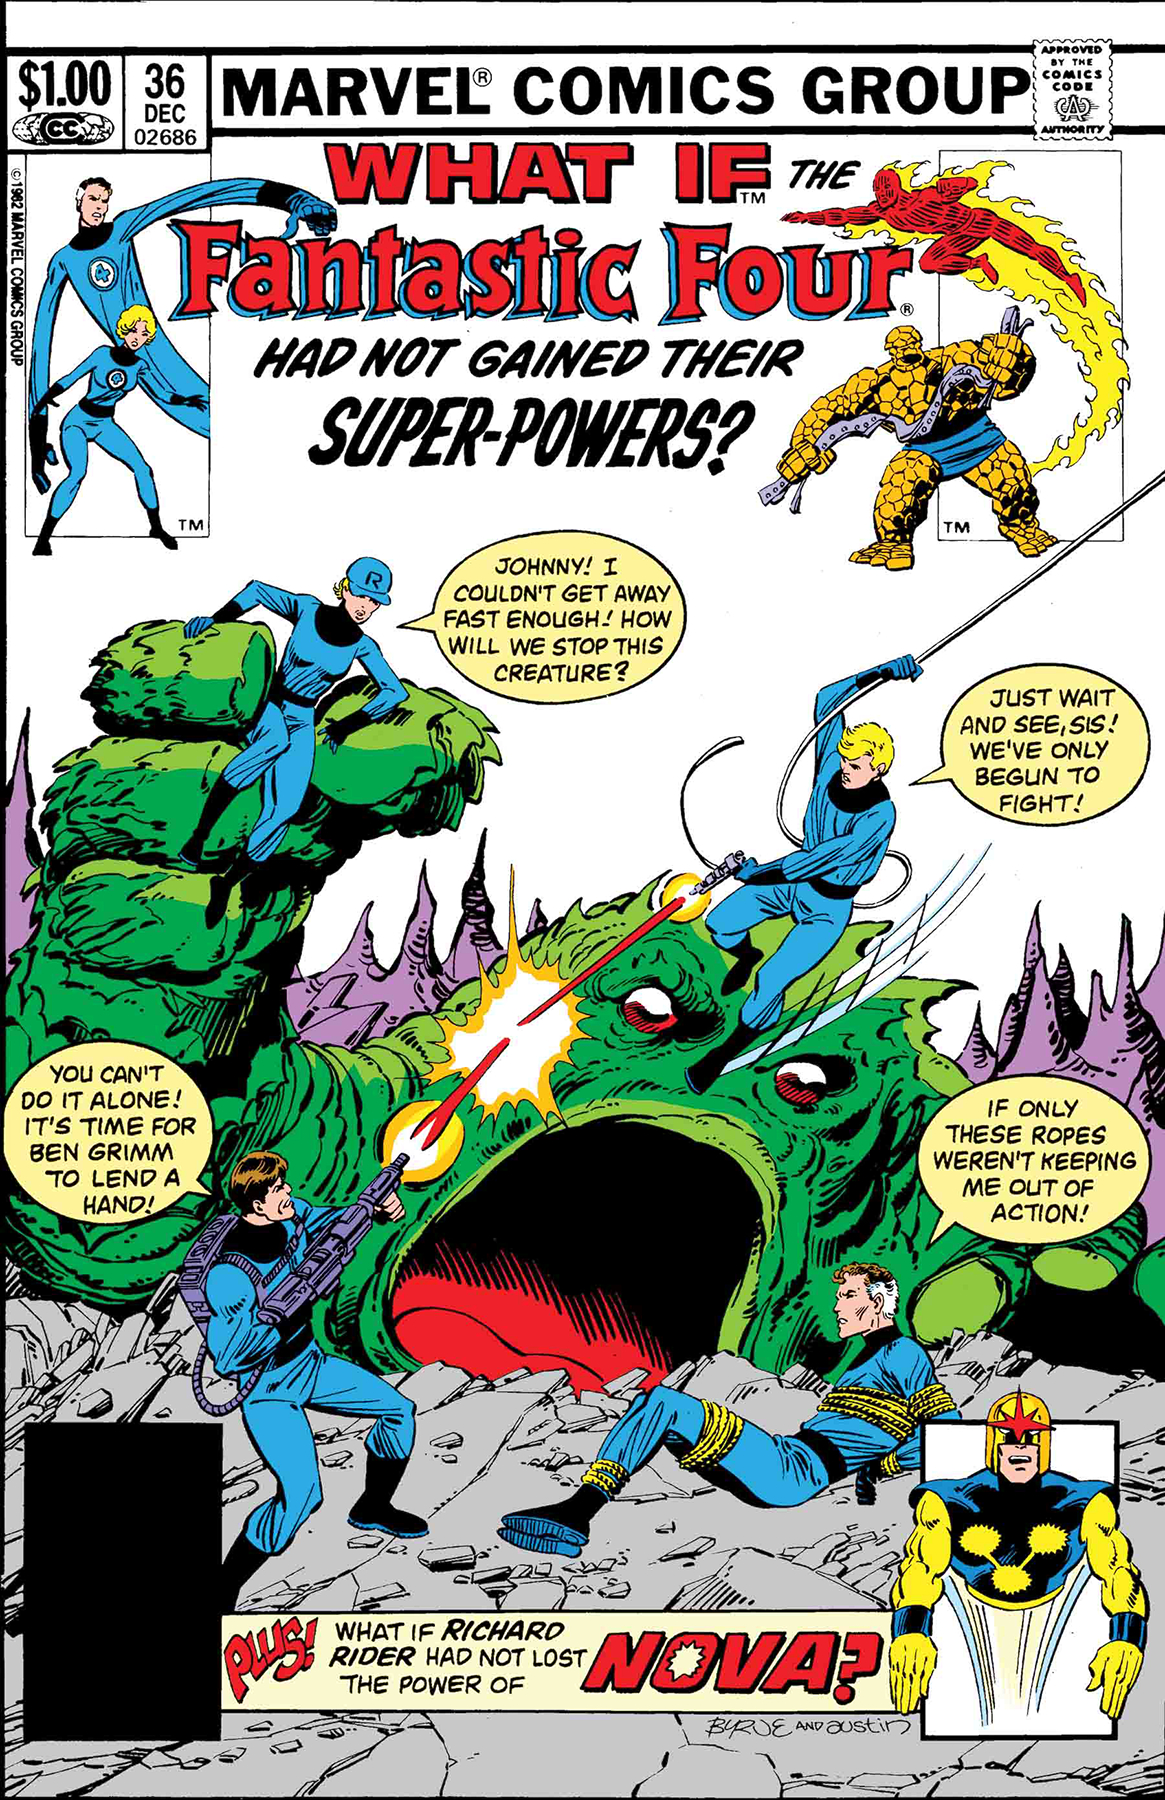 TRUE BELIEVERS WHAT IF FF HAD NOT GAINED THEIR POWERS #1